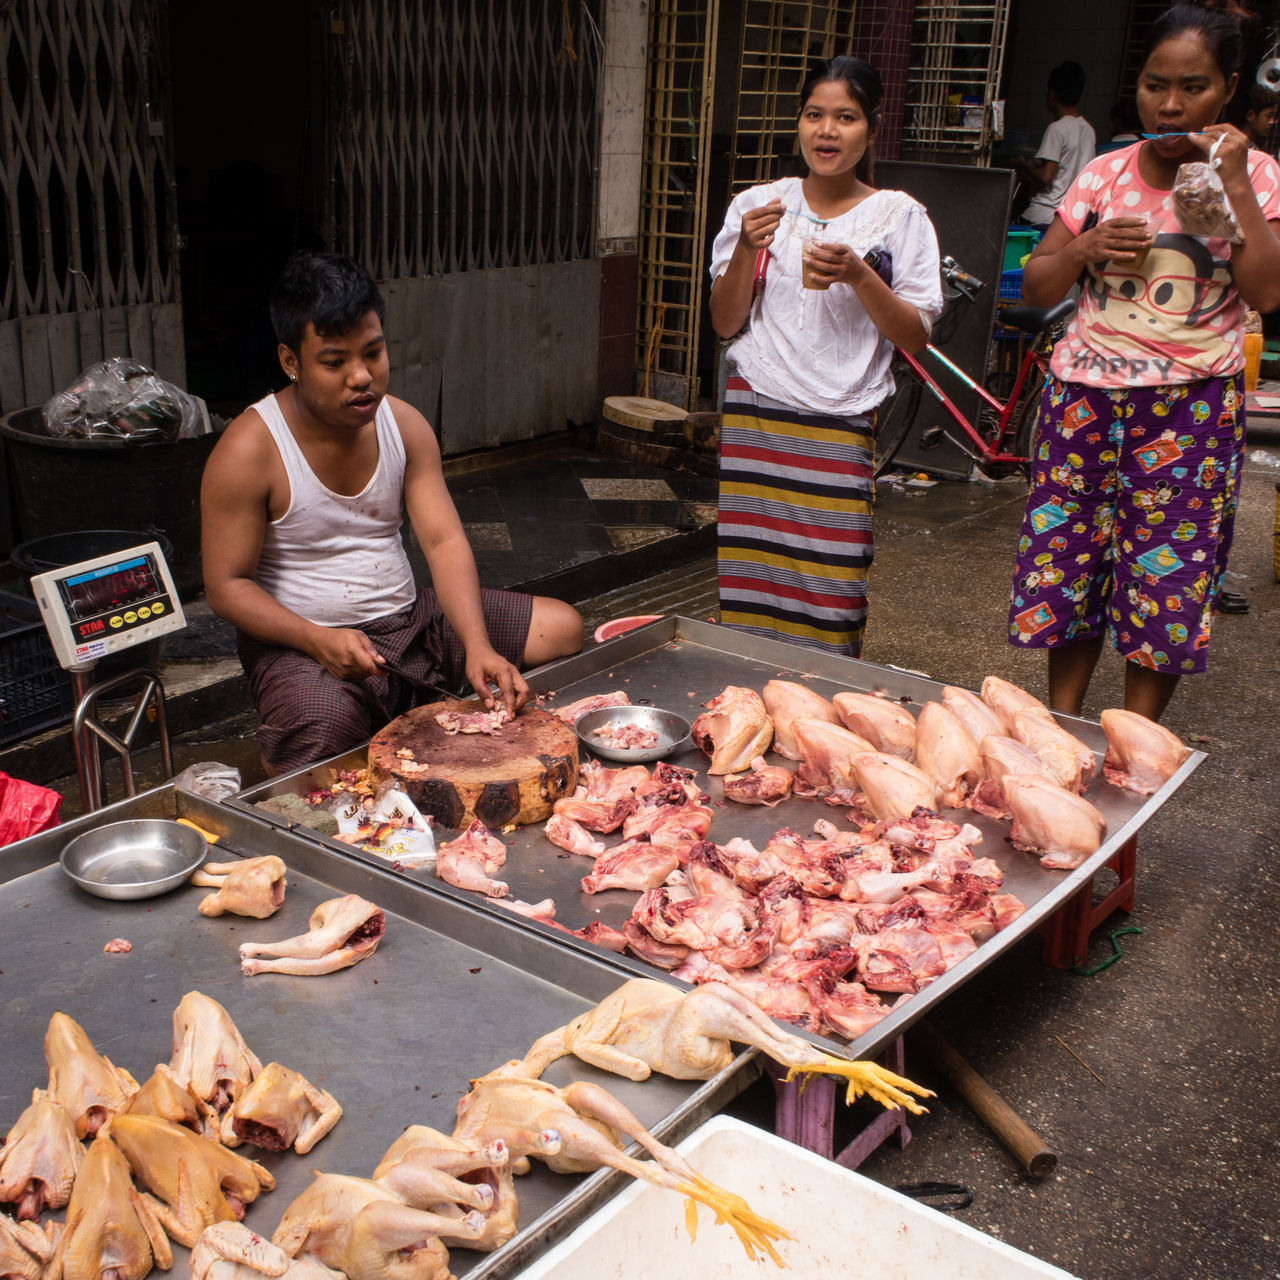 Burma Business Chicken City Life Commerce Day Food Freshness Market Meat Myanmar Outdoors Poultry Raw Shopping Street Market Street Photography Urban Variation Yangon